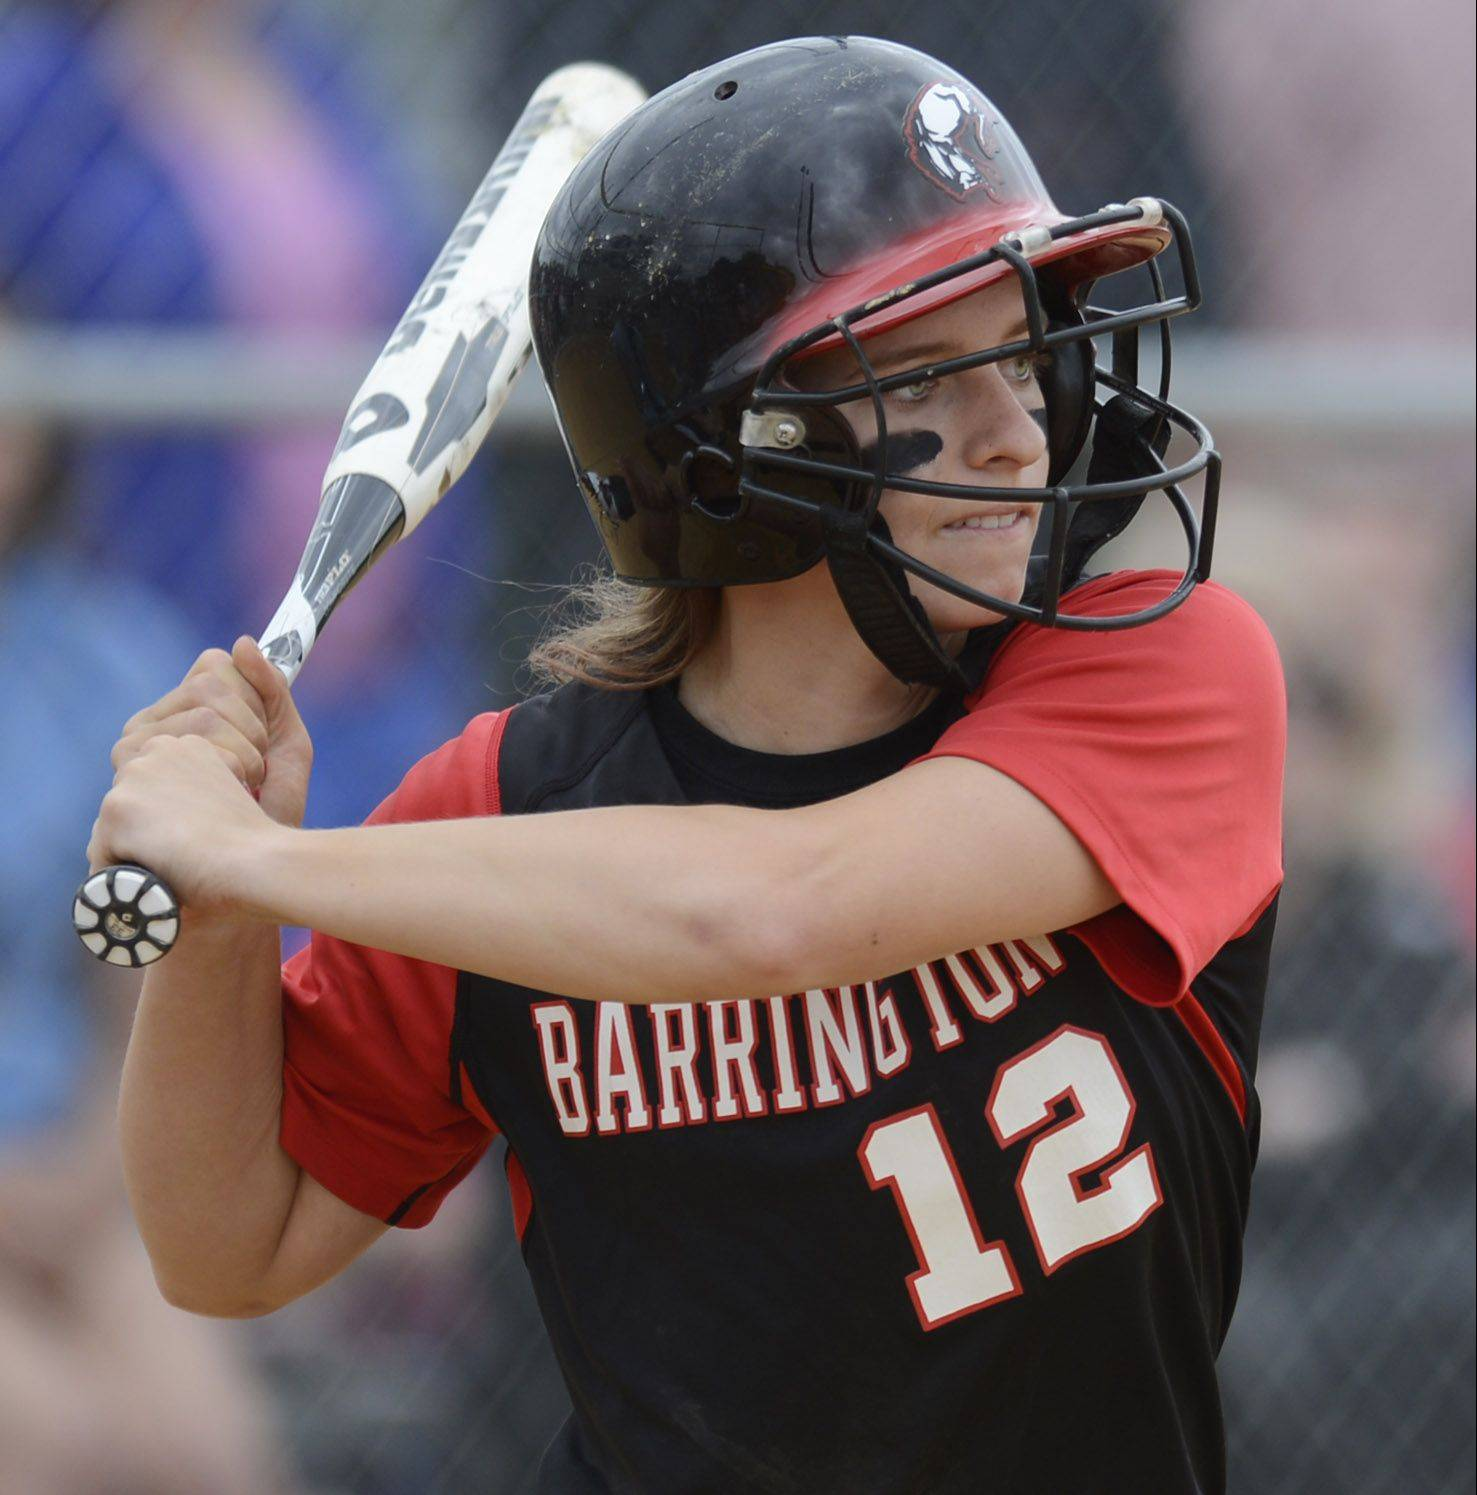 Powerful finish for Barrington's Krzysko